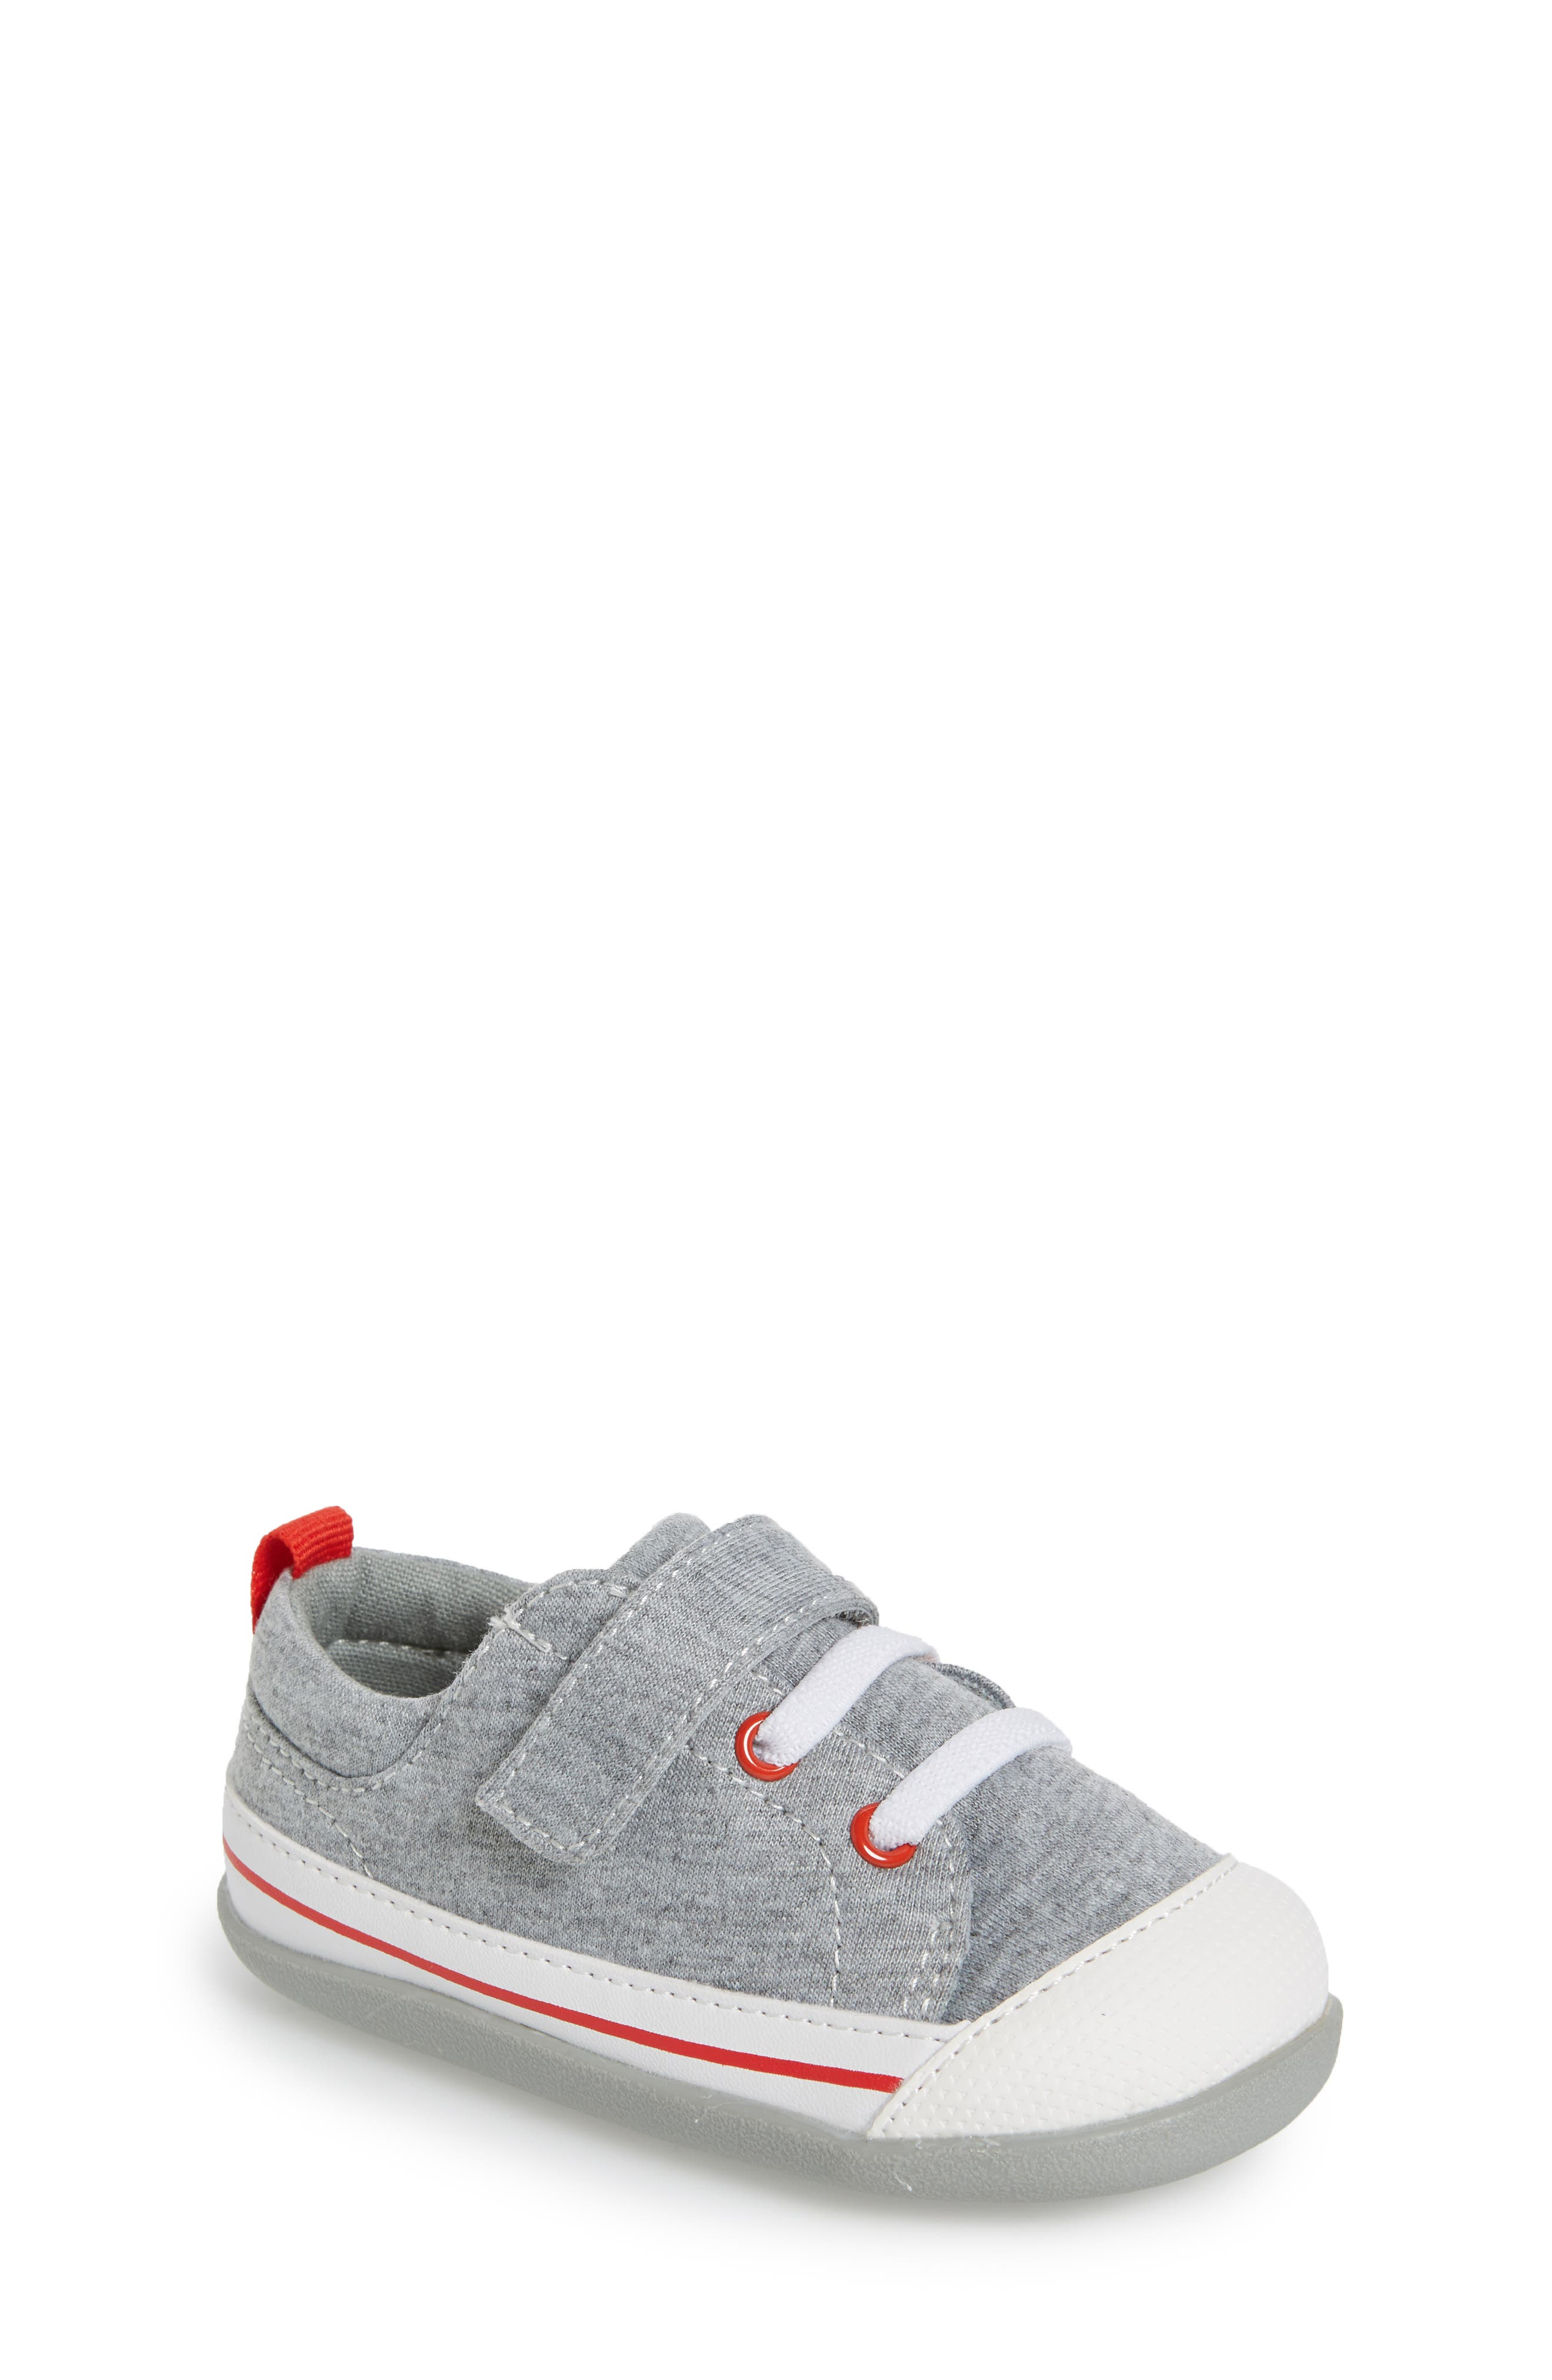 Stevie II Sneaker,                             Main thumbnail 1, color,                             GREY JERSEY